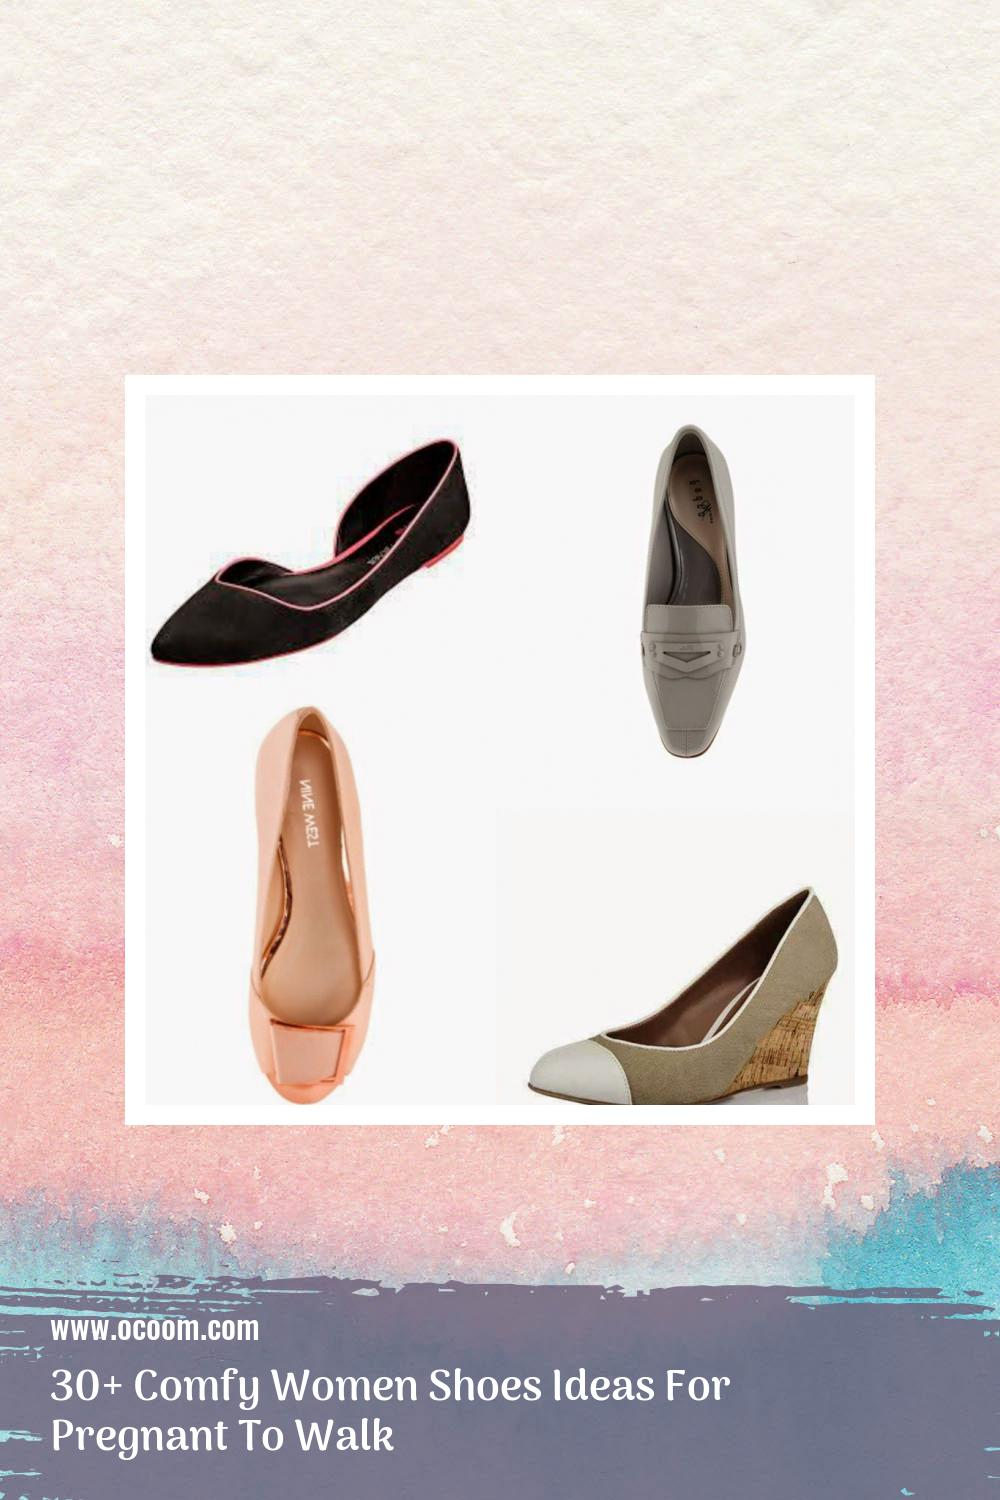 30+ Comfy Women Shoes Ideas For Pregnant To Walk 6